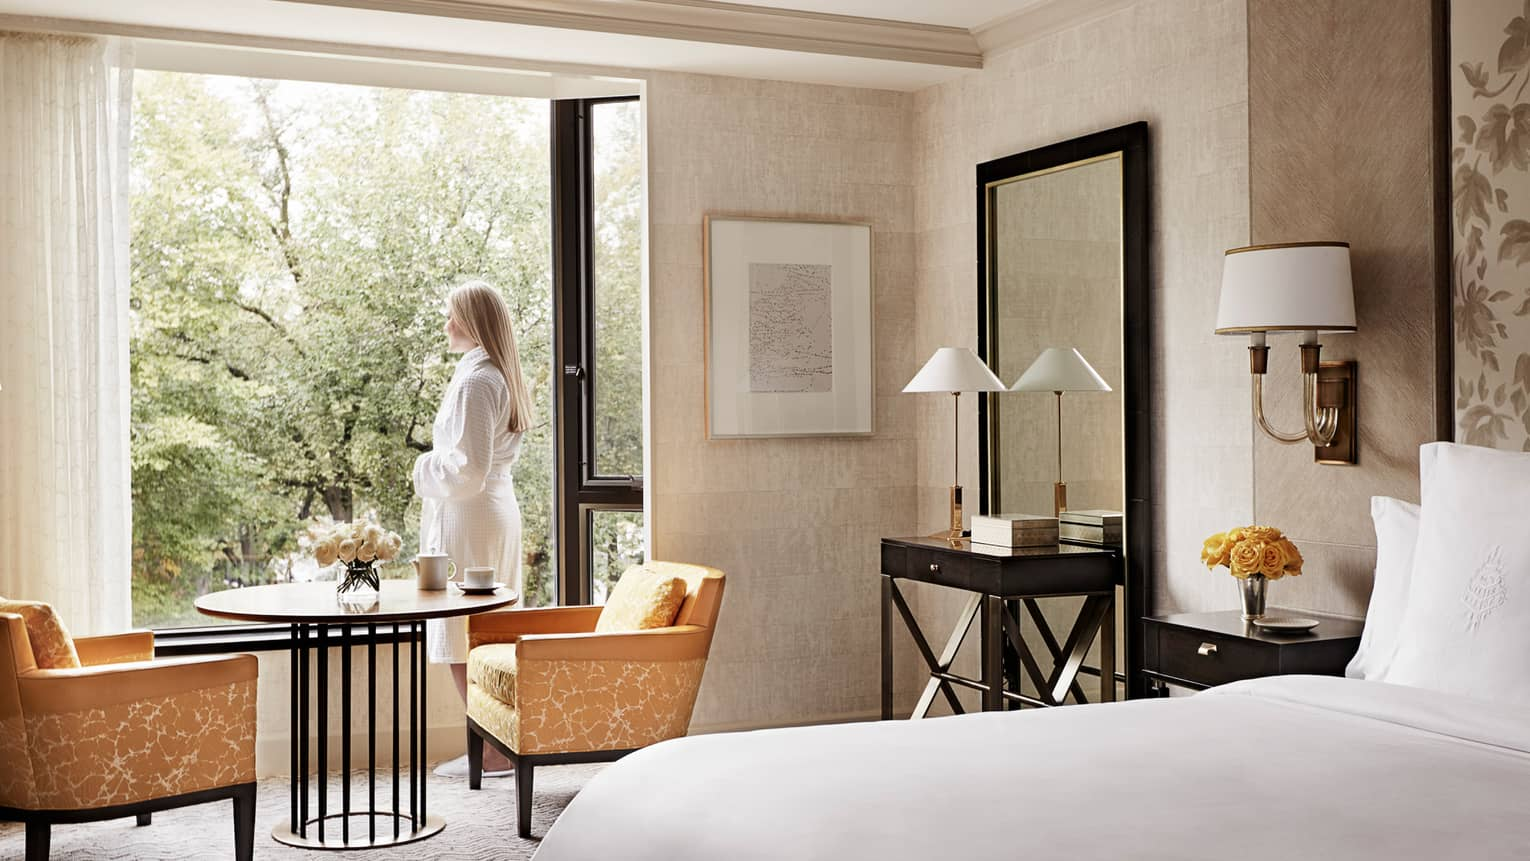 A woman wearing a robe, standing in her pristine room and looking outside the window at lush trees